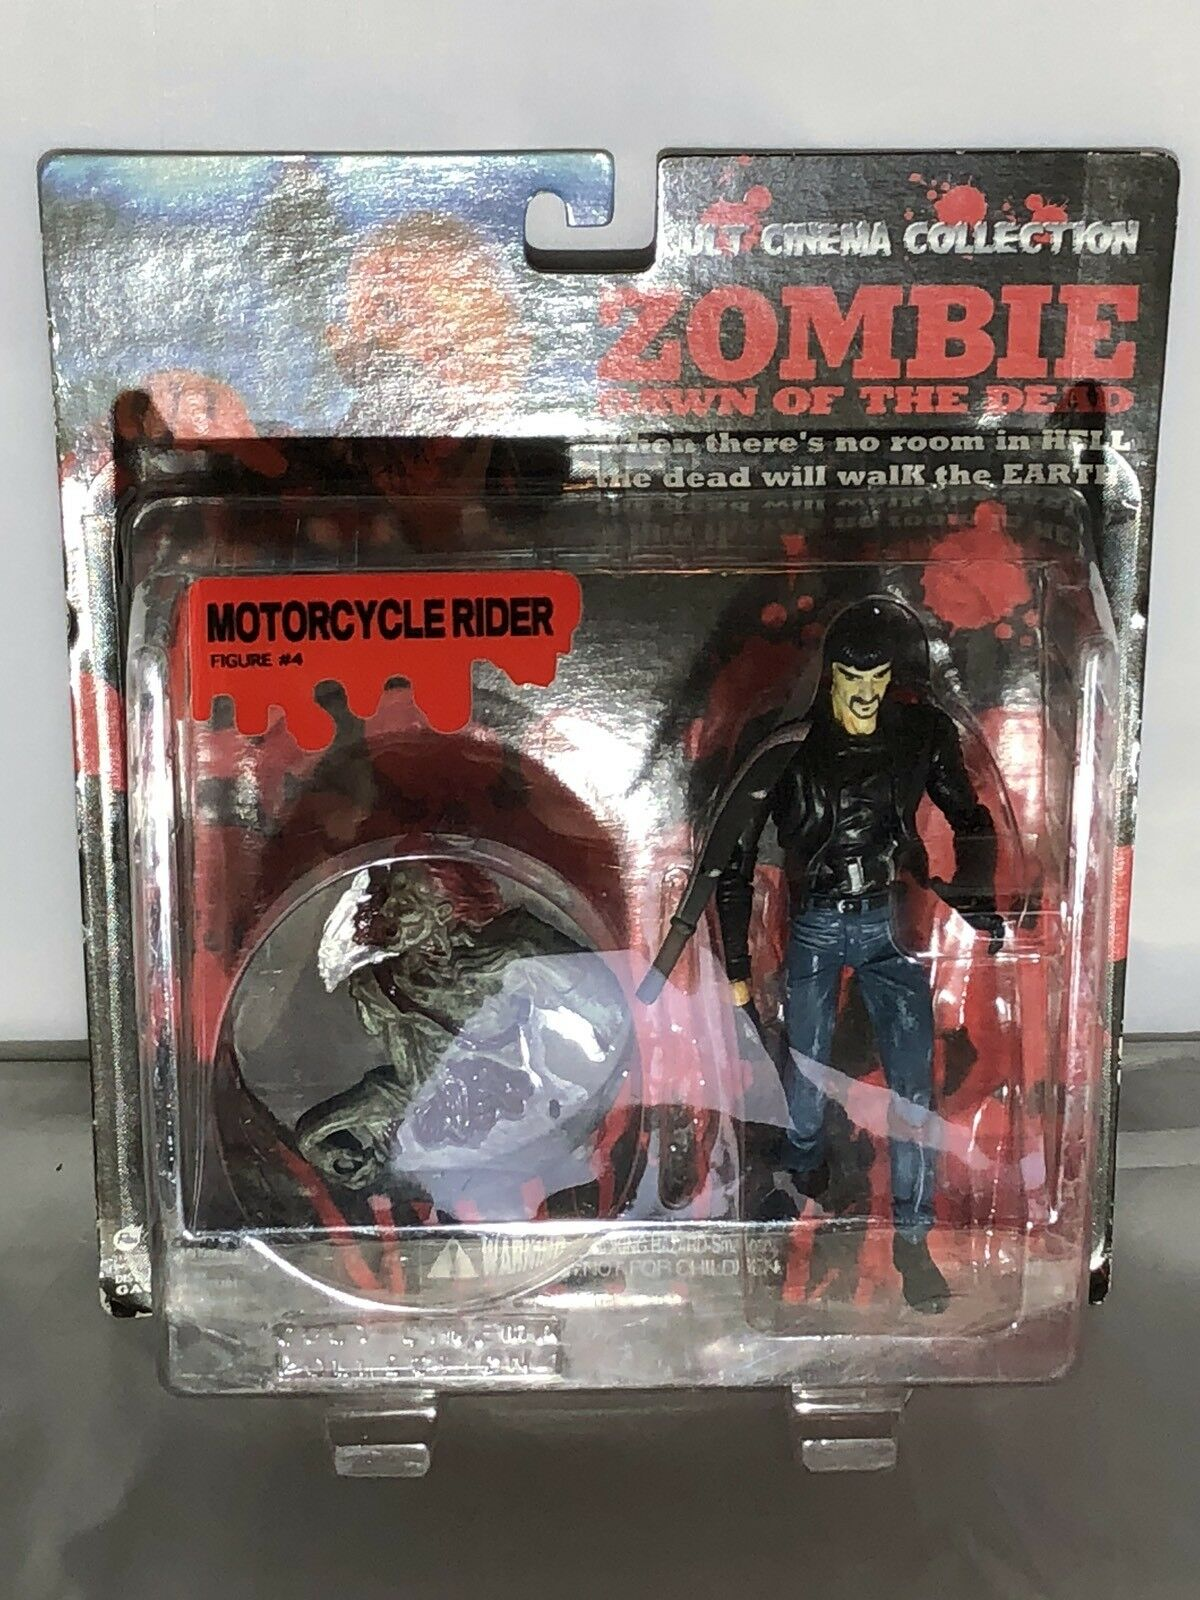 Cult Cinema Collection Zombie Dawn of the Dead Figure  3 Motorcycle Rider DOTD14